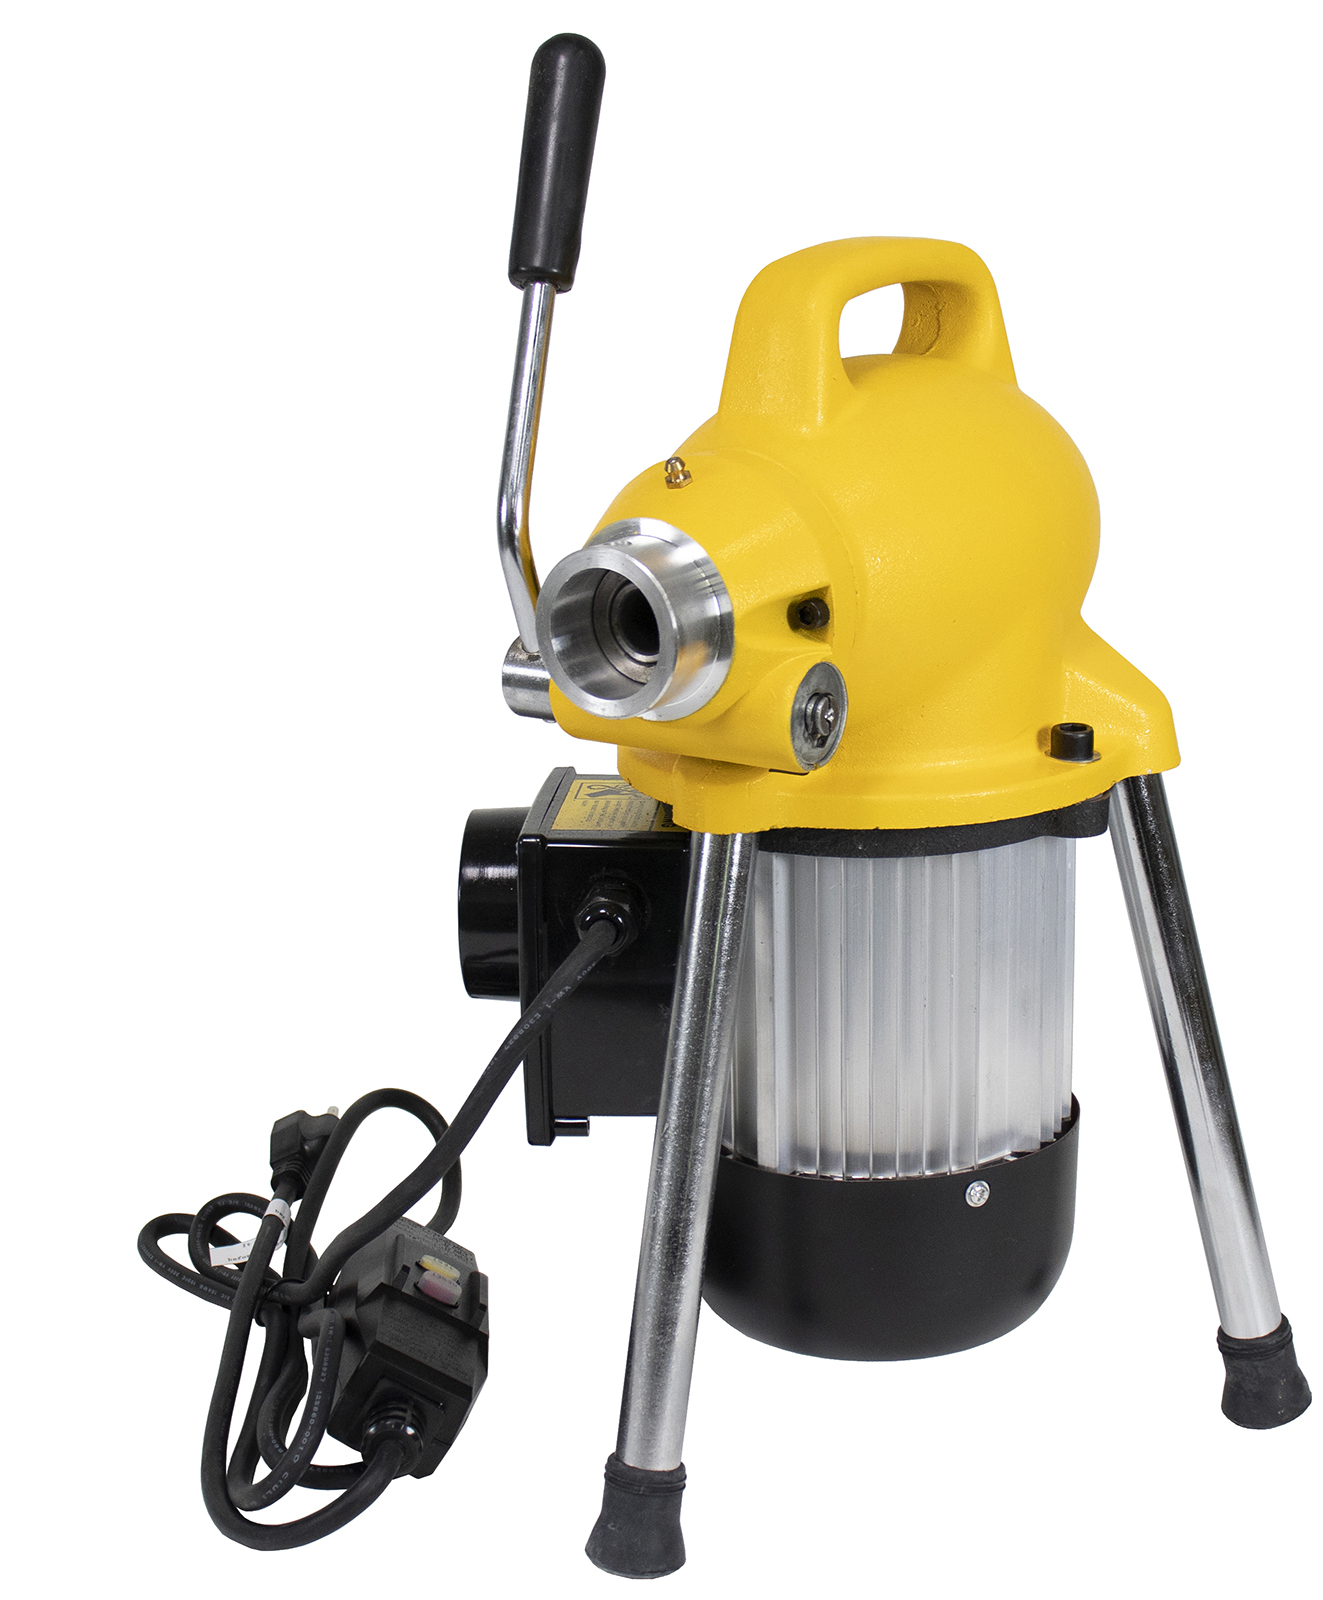 hight resolution of steel dragon tools k50 drain cleaning machine fits ridgid snake sewer c8 cable 2 2 of 12